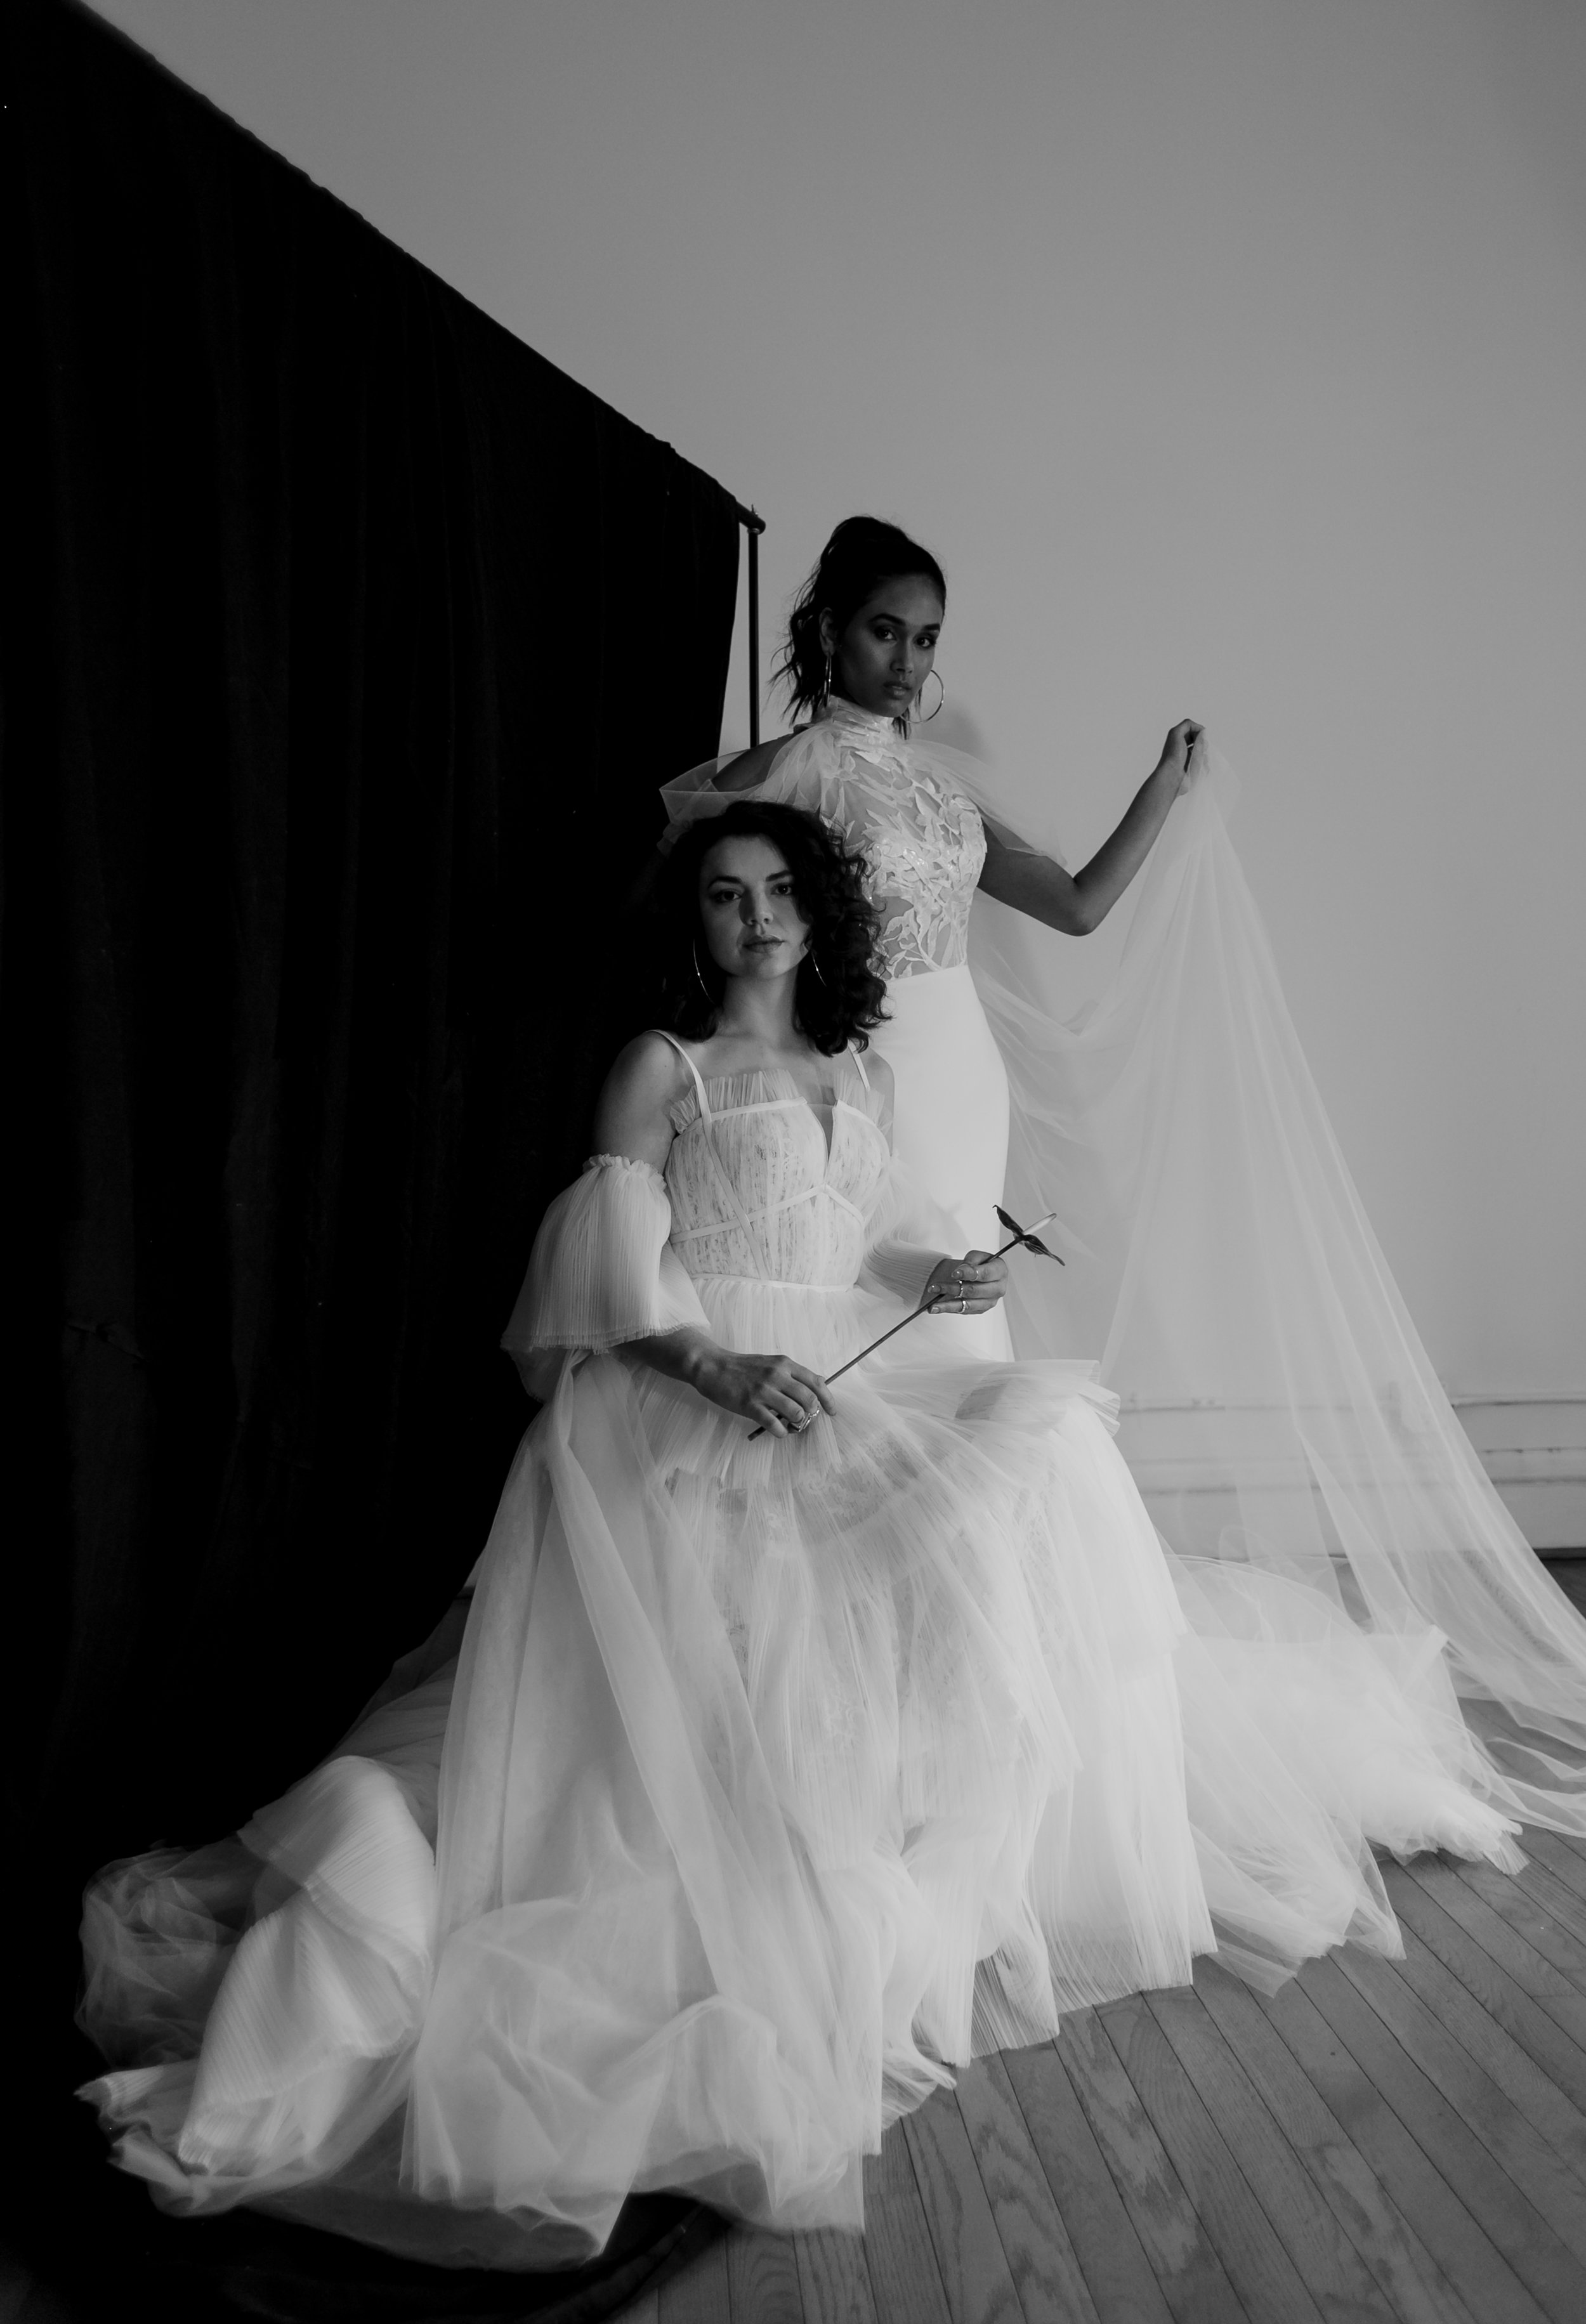 Chicago-Bride-Wedding-Dress-Varca-Edited-455.jpg